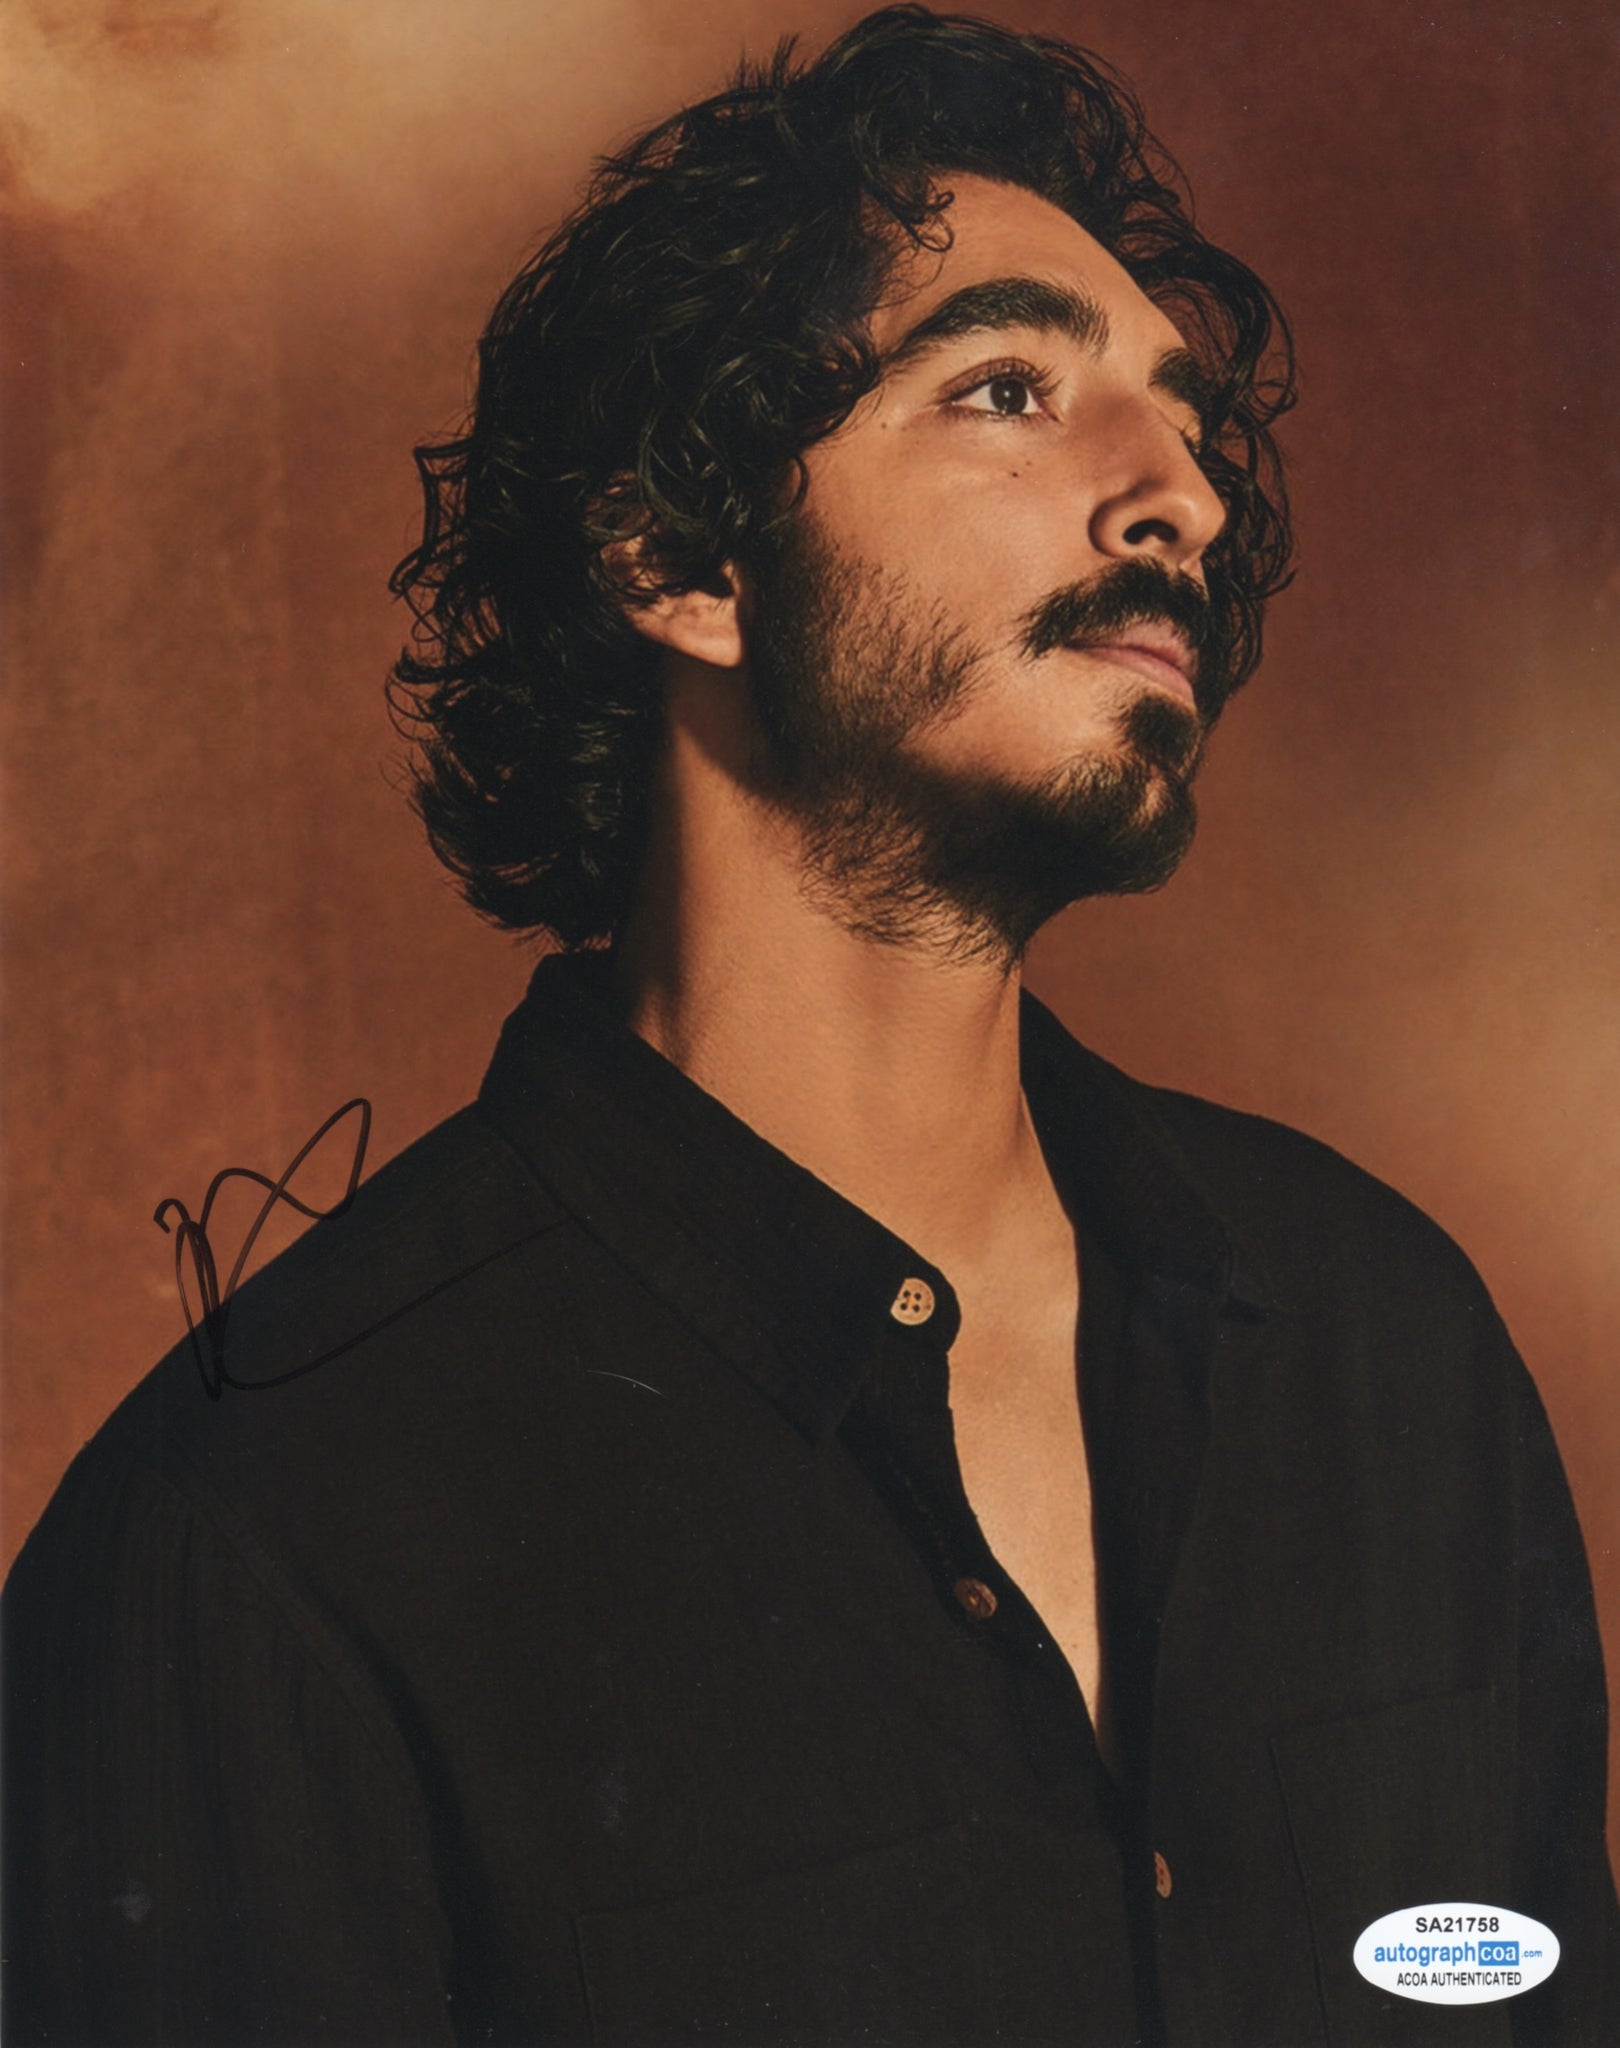 Dev Patel Signed Autograph 8x10 Photo ACOA #2 - Outlaw Hobbies Authentic Autographs